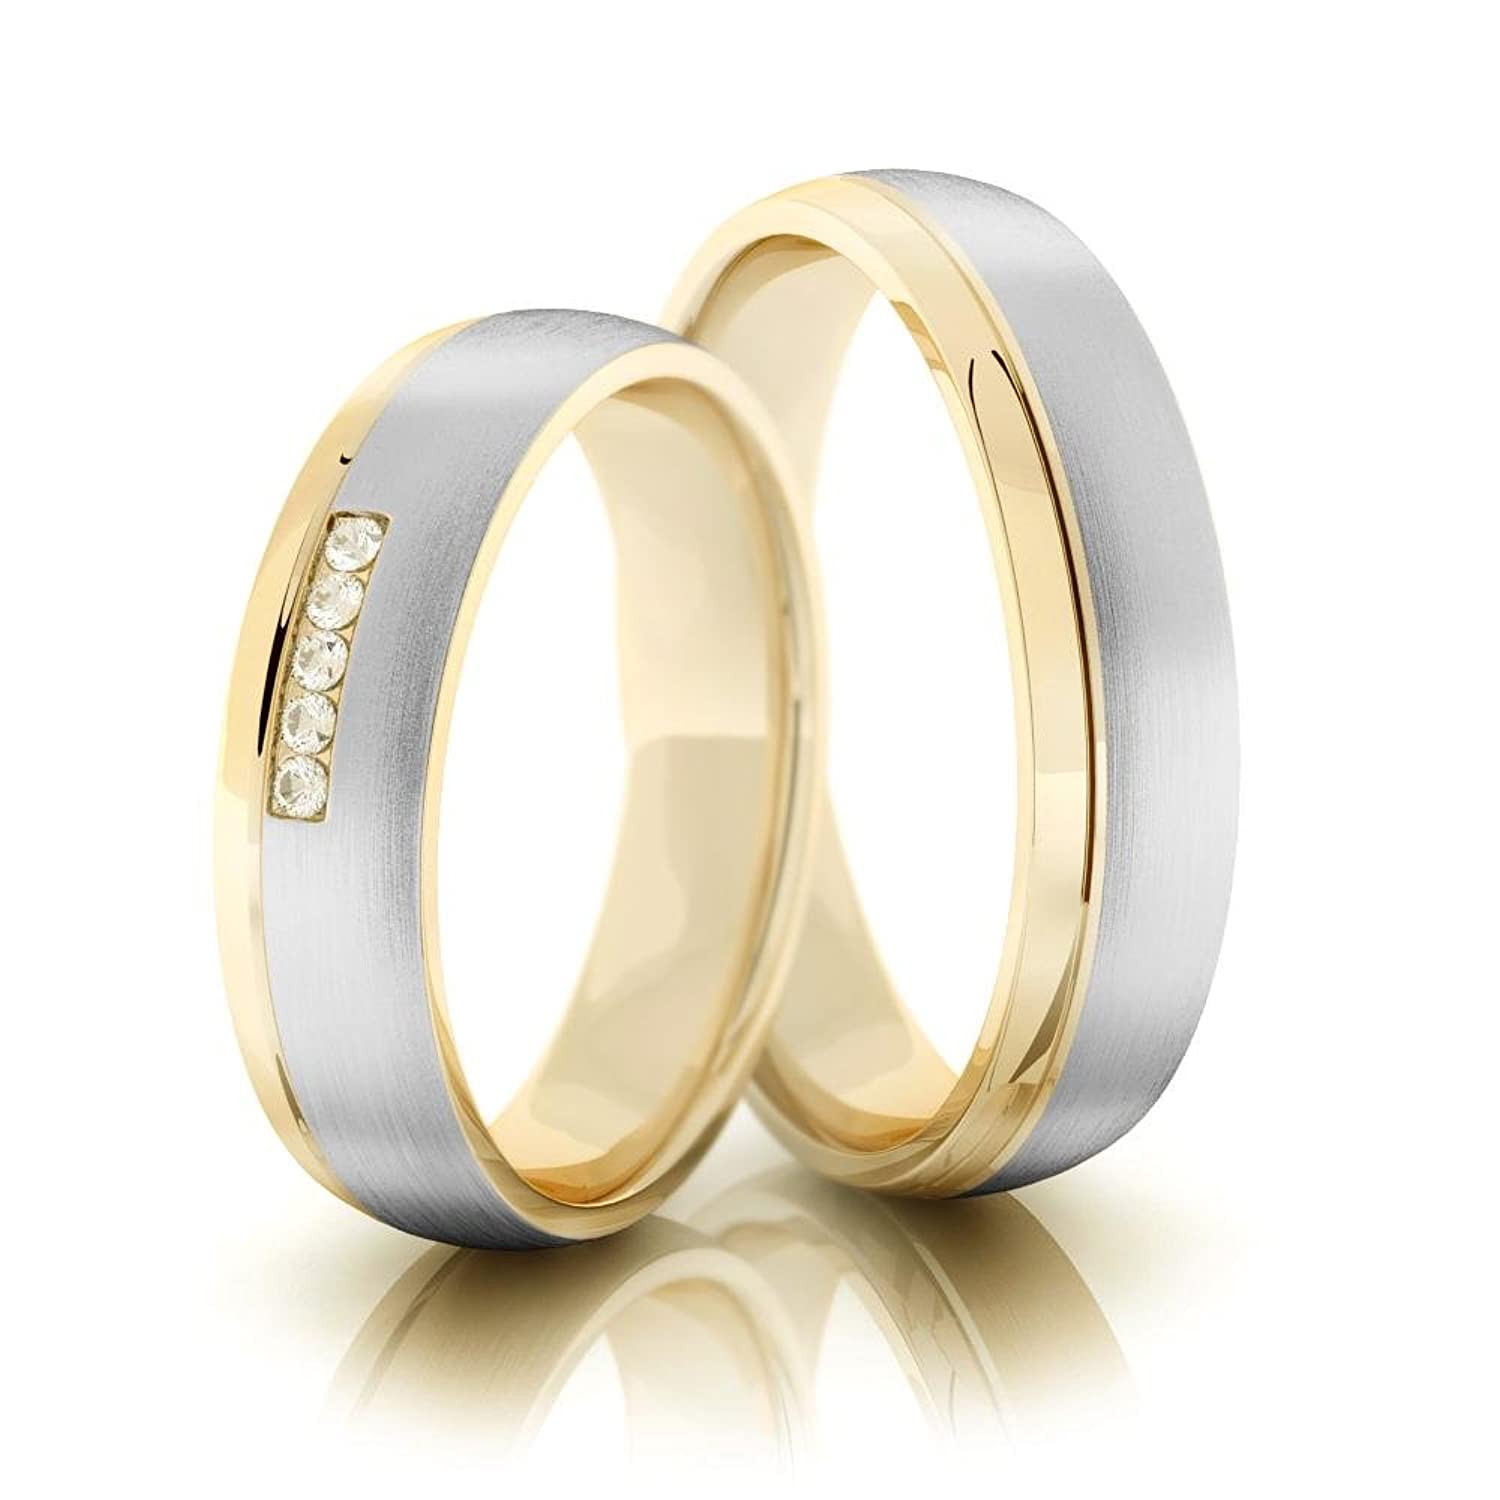 14k Gold Brush Low Dome Grooved Couples Wedding Bands 0.05 Carat Diamond 5mm